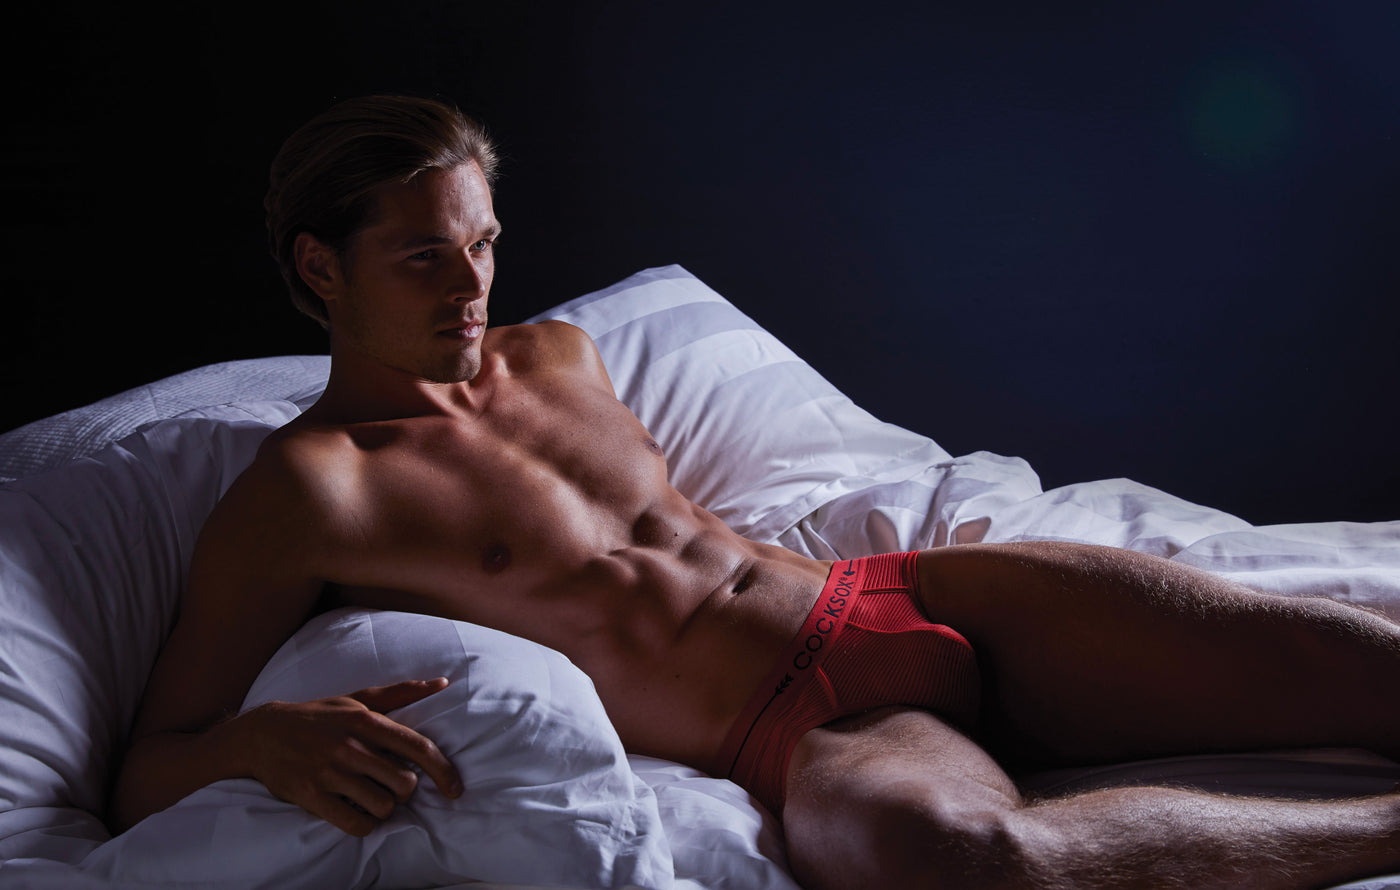 Cocksox Editorial image of the CX76SH Sheer Underwear Sports Brief in Cupid Red